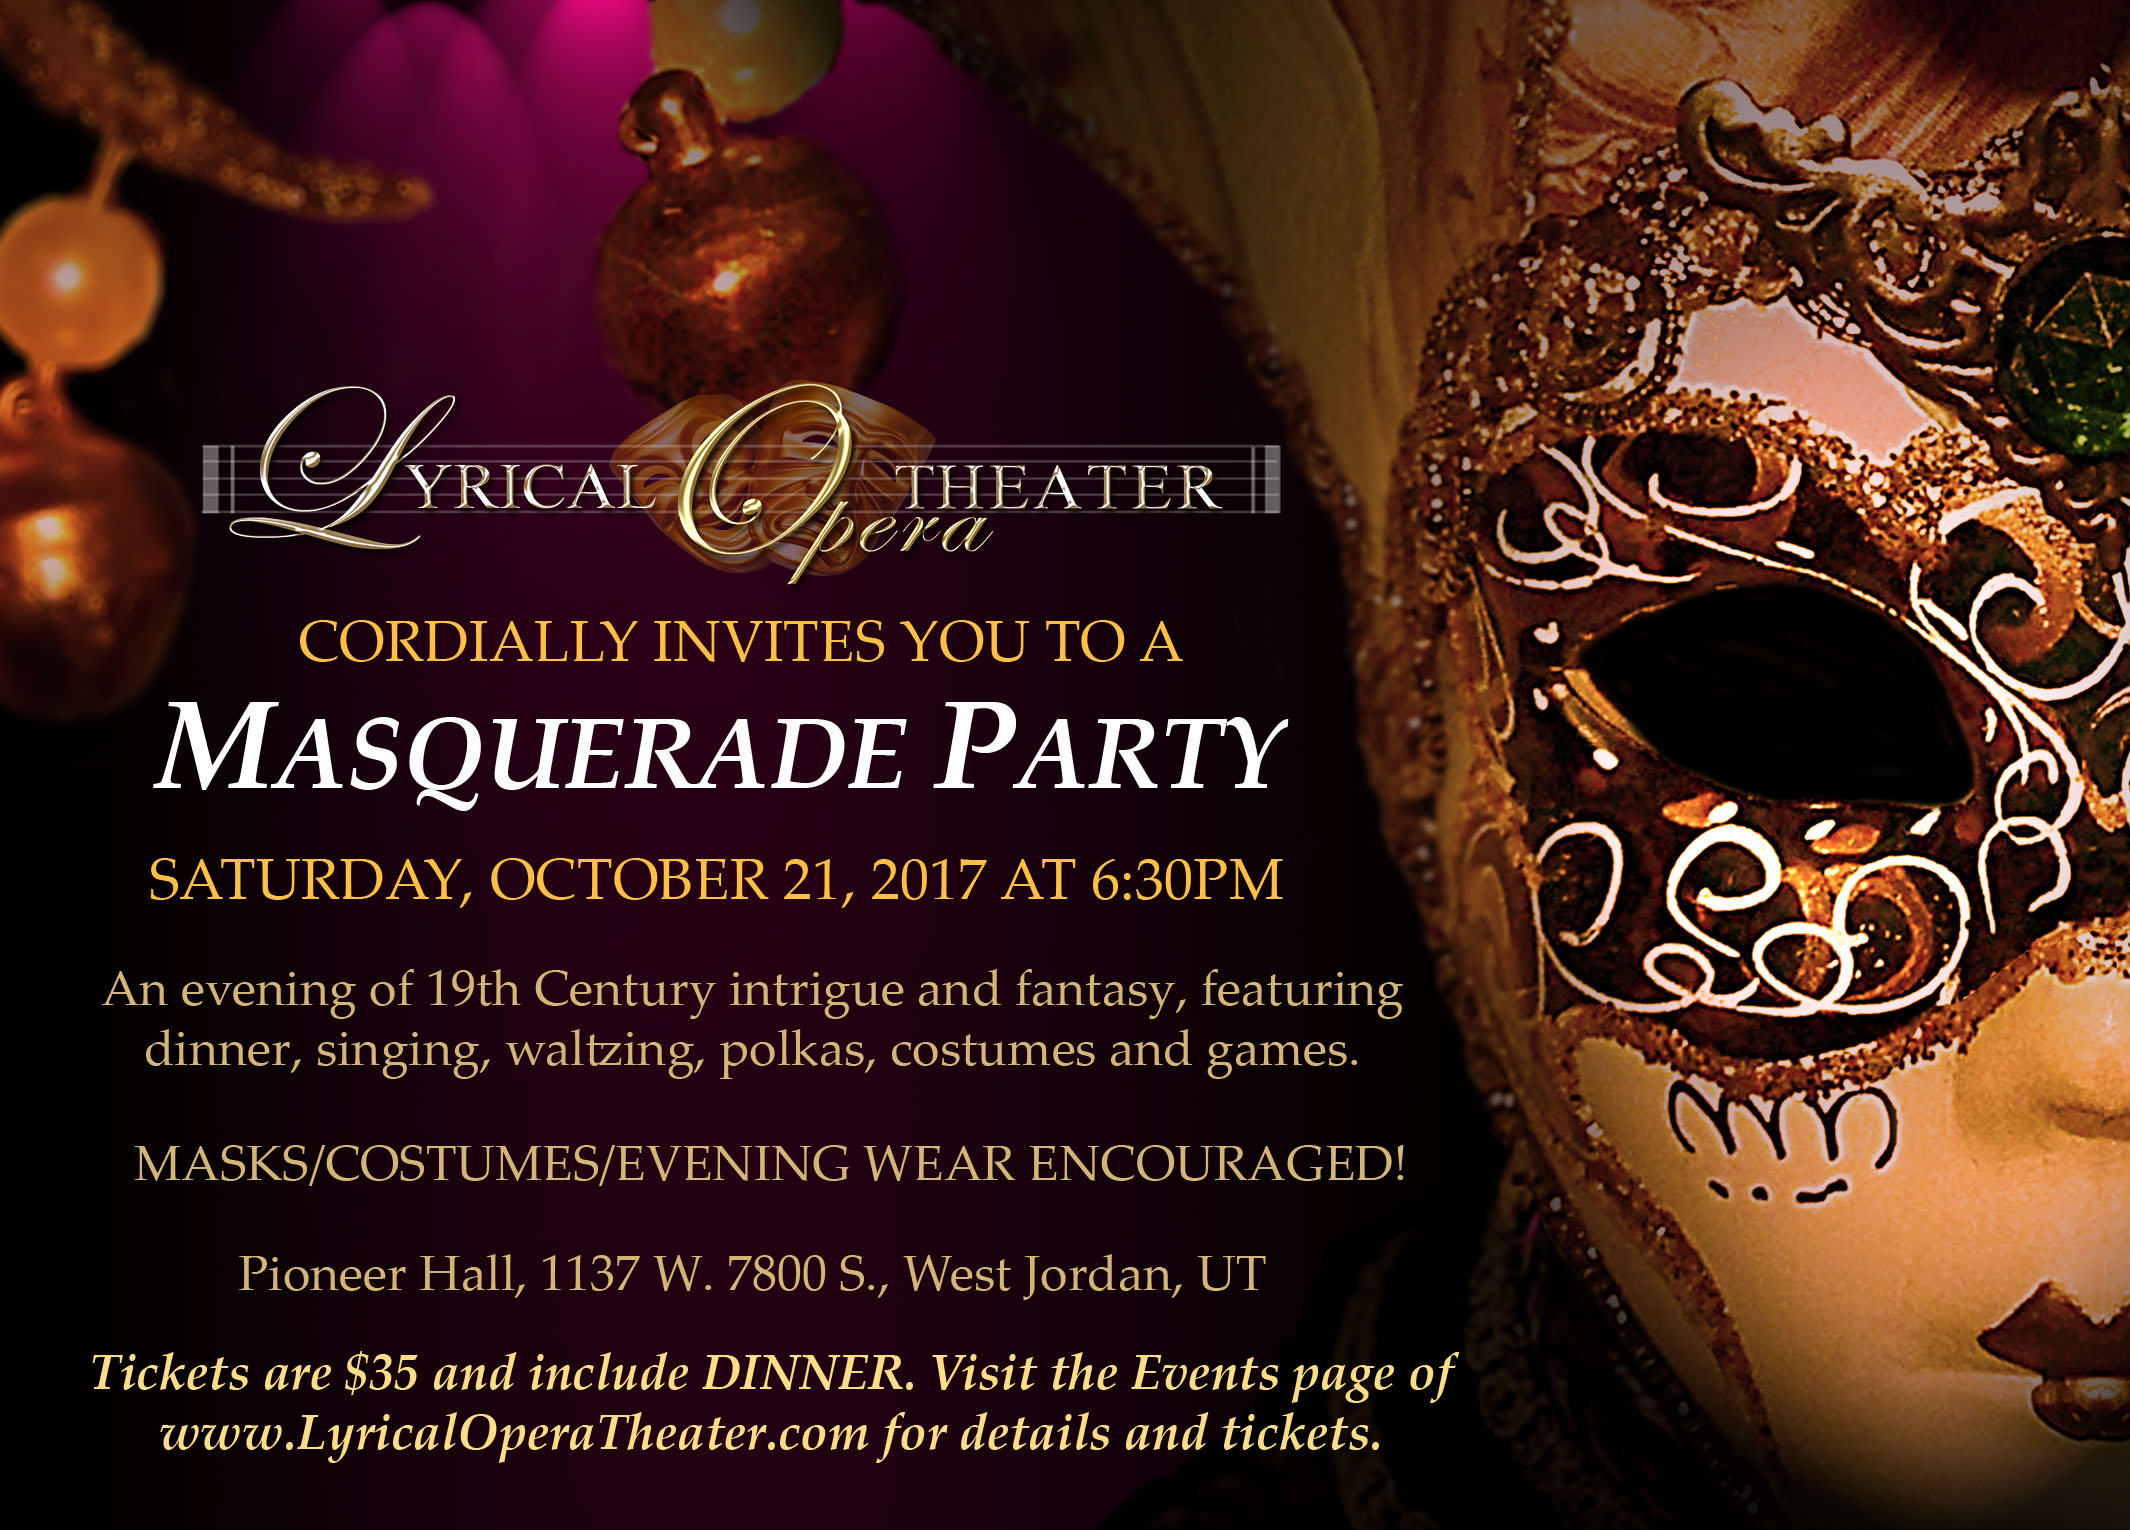 Masquerade Party Presented By Lyrical Opera Theater